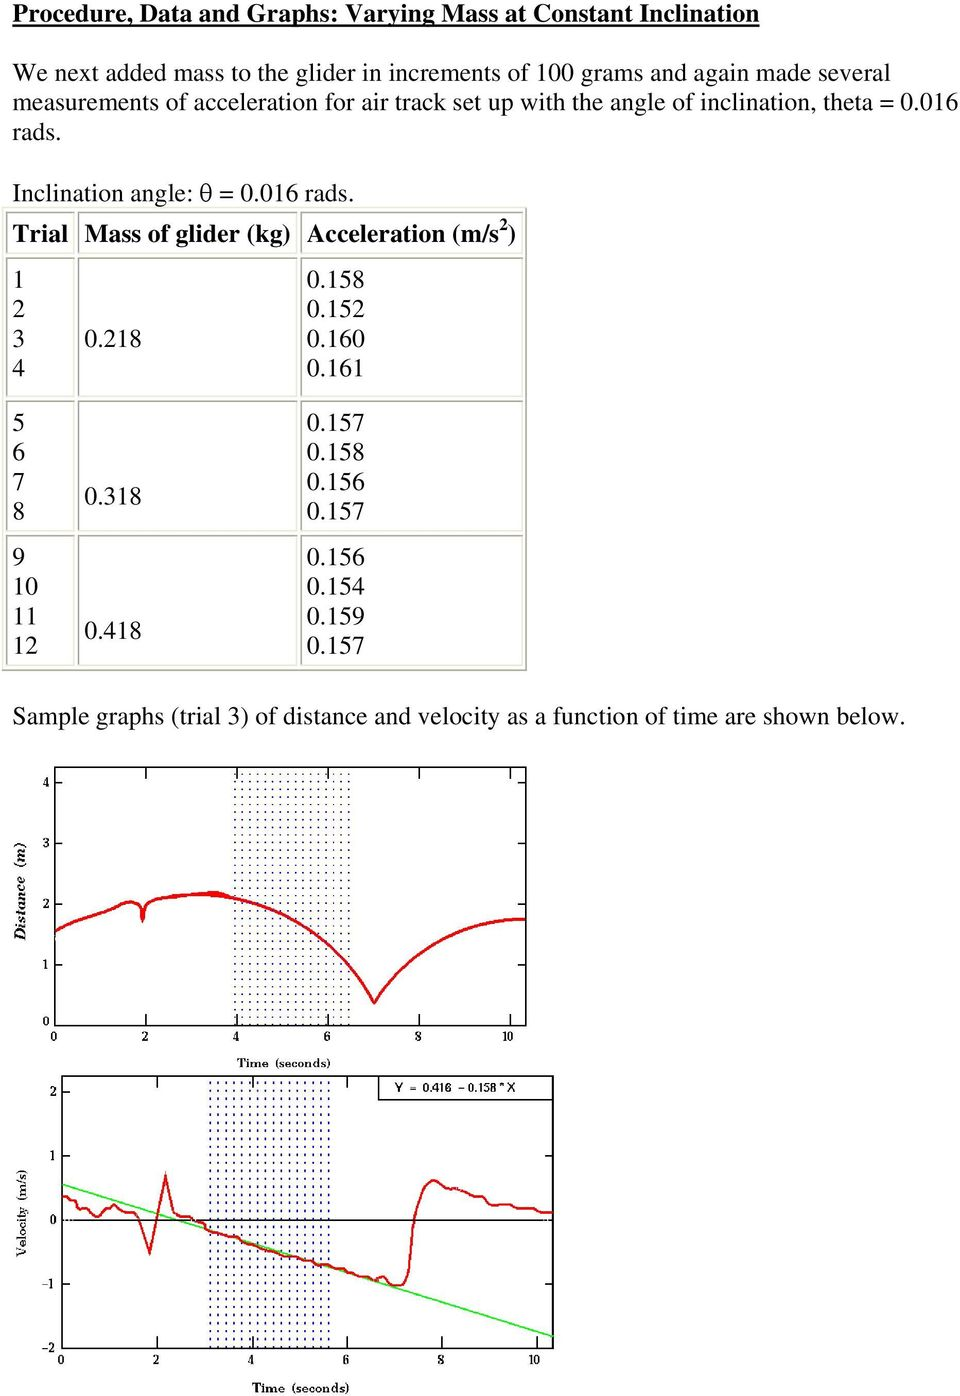 Inclination angle: θ = 0.016 rads. Trial Mass of glider (kg) Acceleration (m/s 2 ) 1 2 3 4 0.218 0.158 0.152 0.160 0.